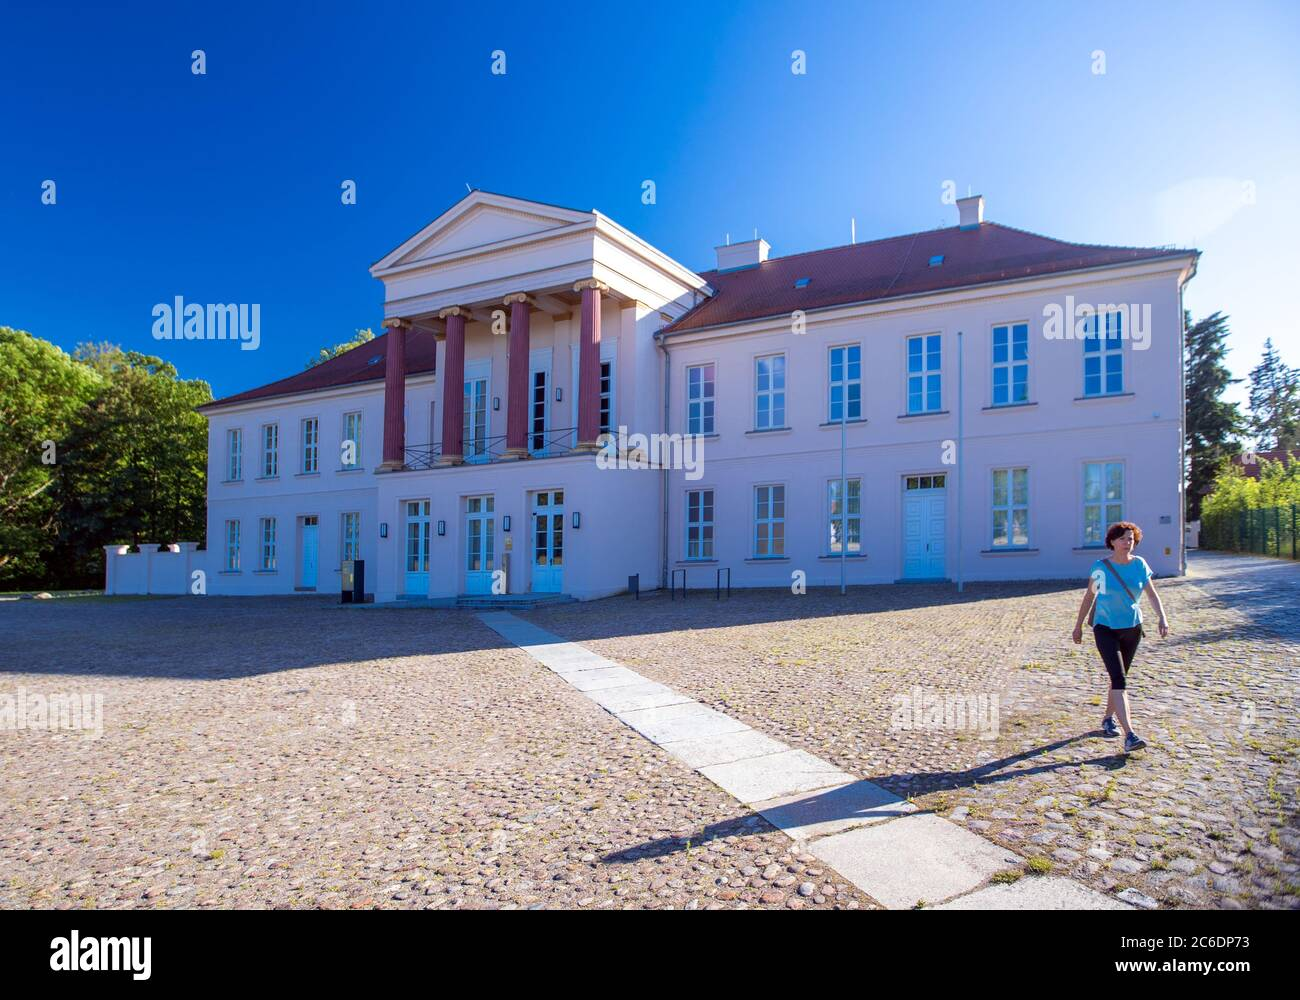 Neustrelitz, Germany. 23rd June, 2020. The Kavaliershaus on today's Schlossplatz is the only remaining building of the former residential palace. Credit: Jens Büttner/dpa-Zentralbild/ZB/dpa/Alamy Live News Stock Photo